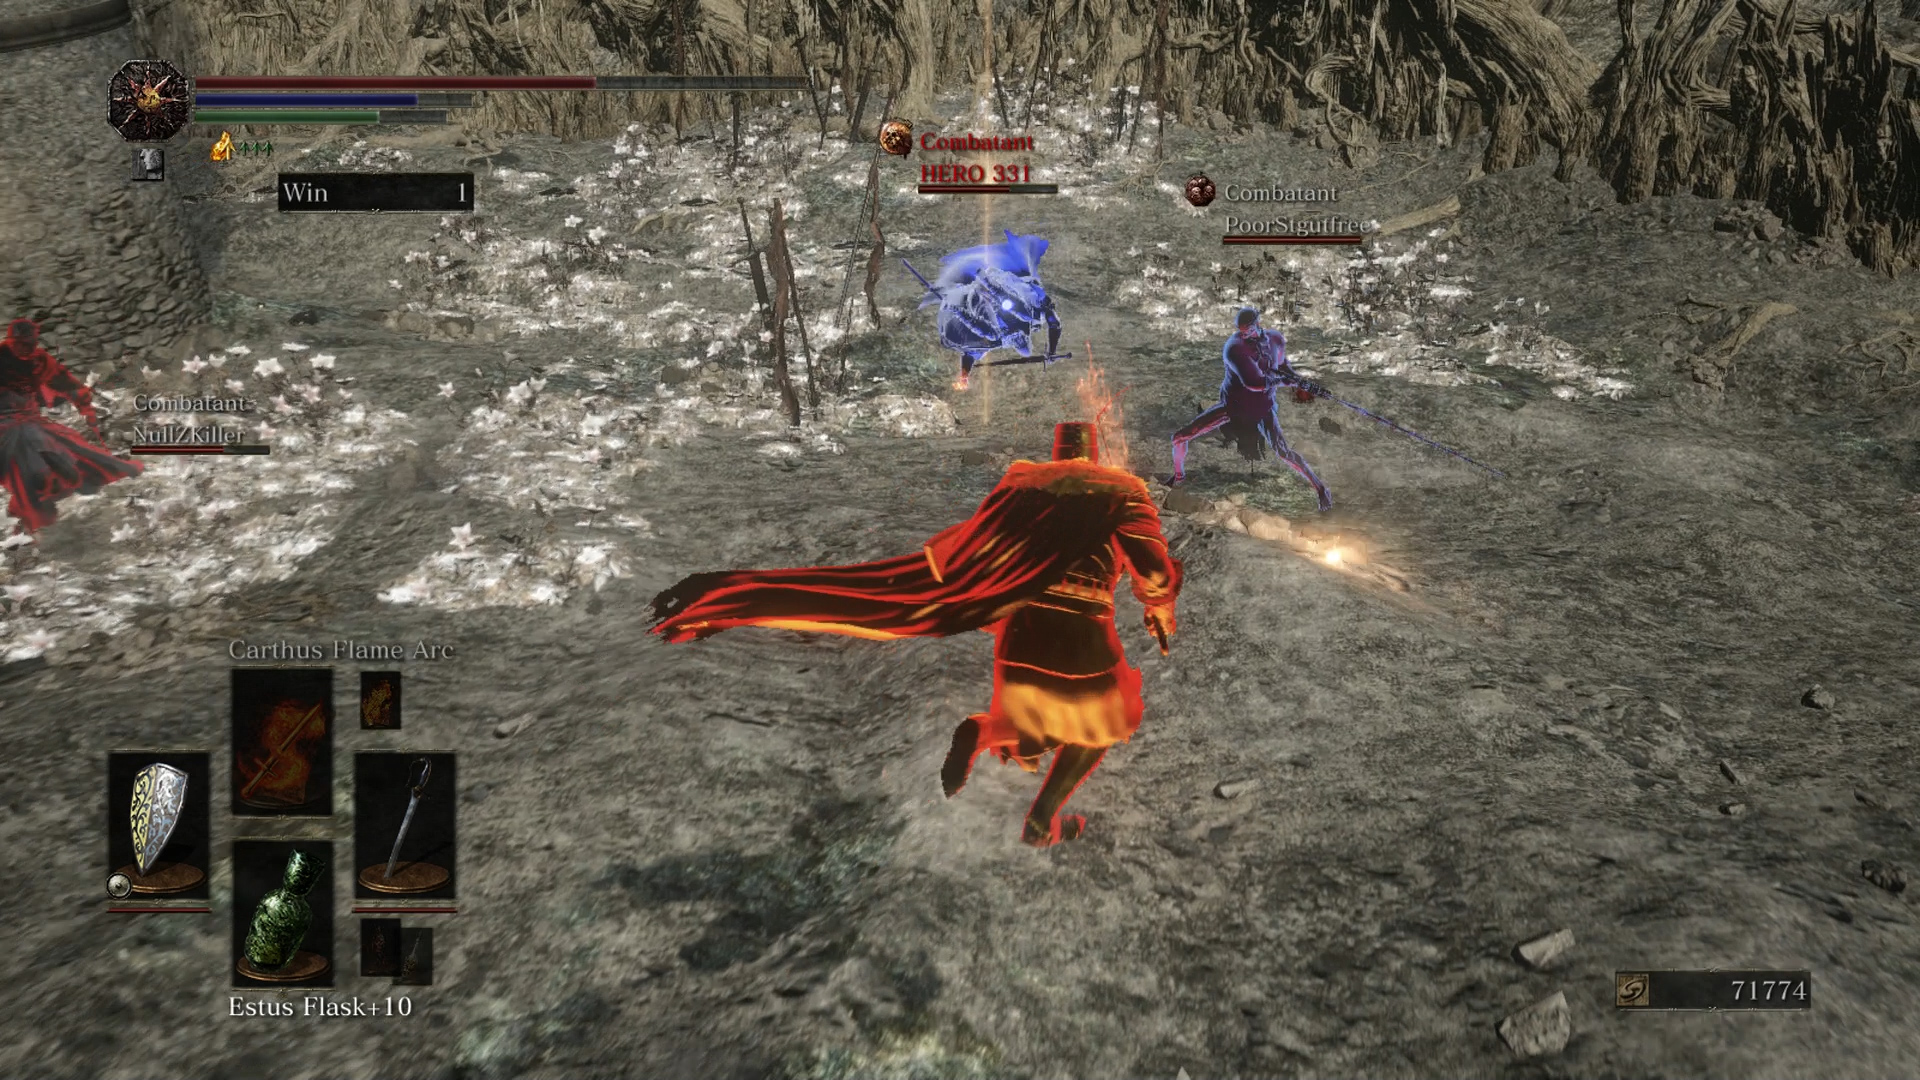 Fighting with five other players can become hectic very quickly